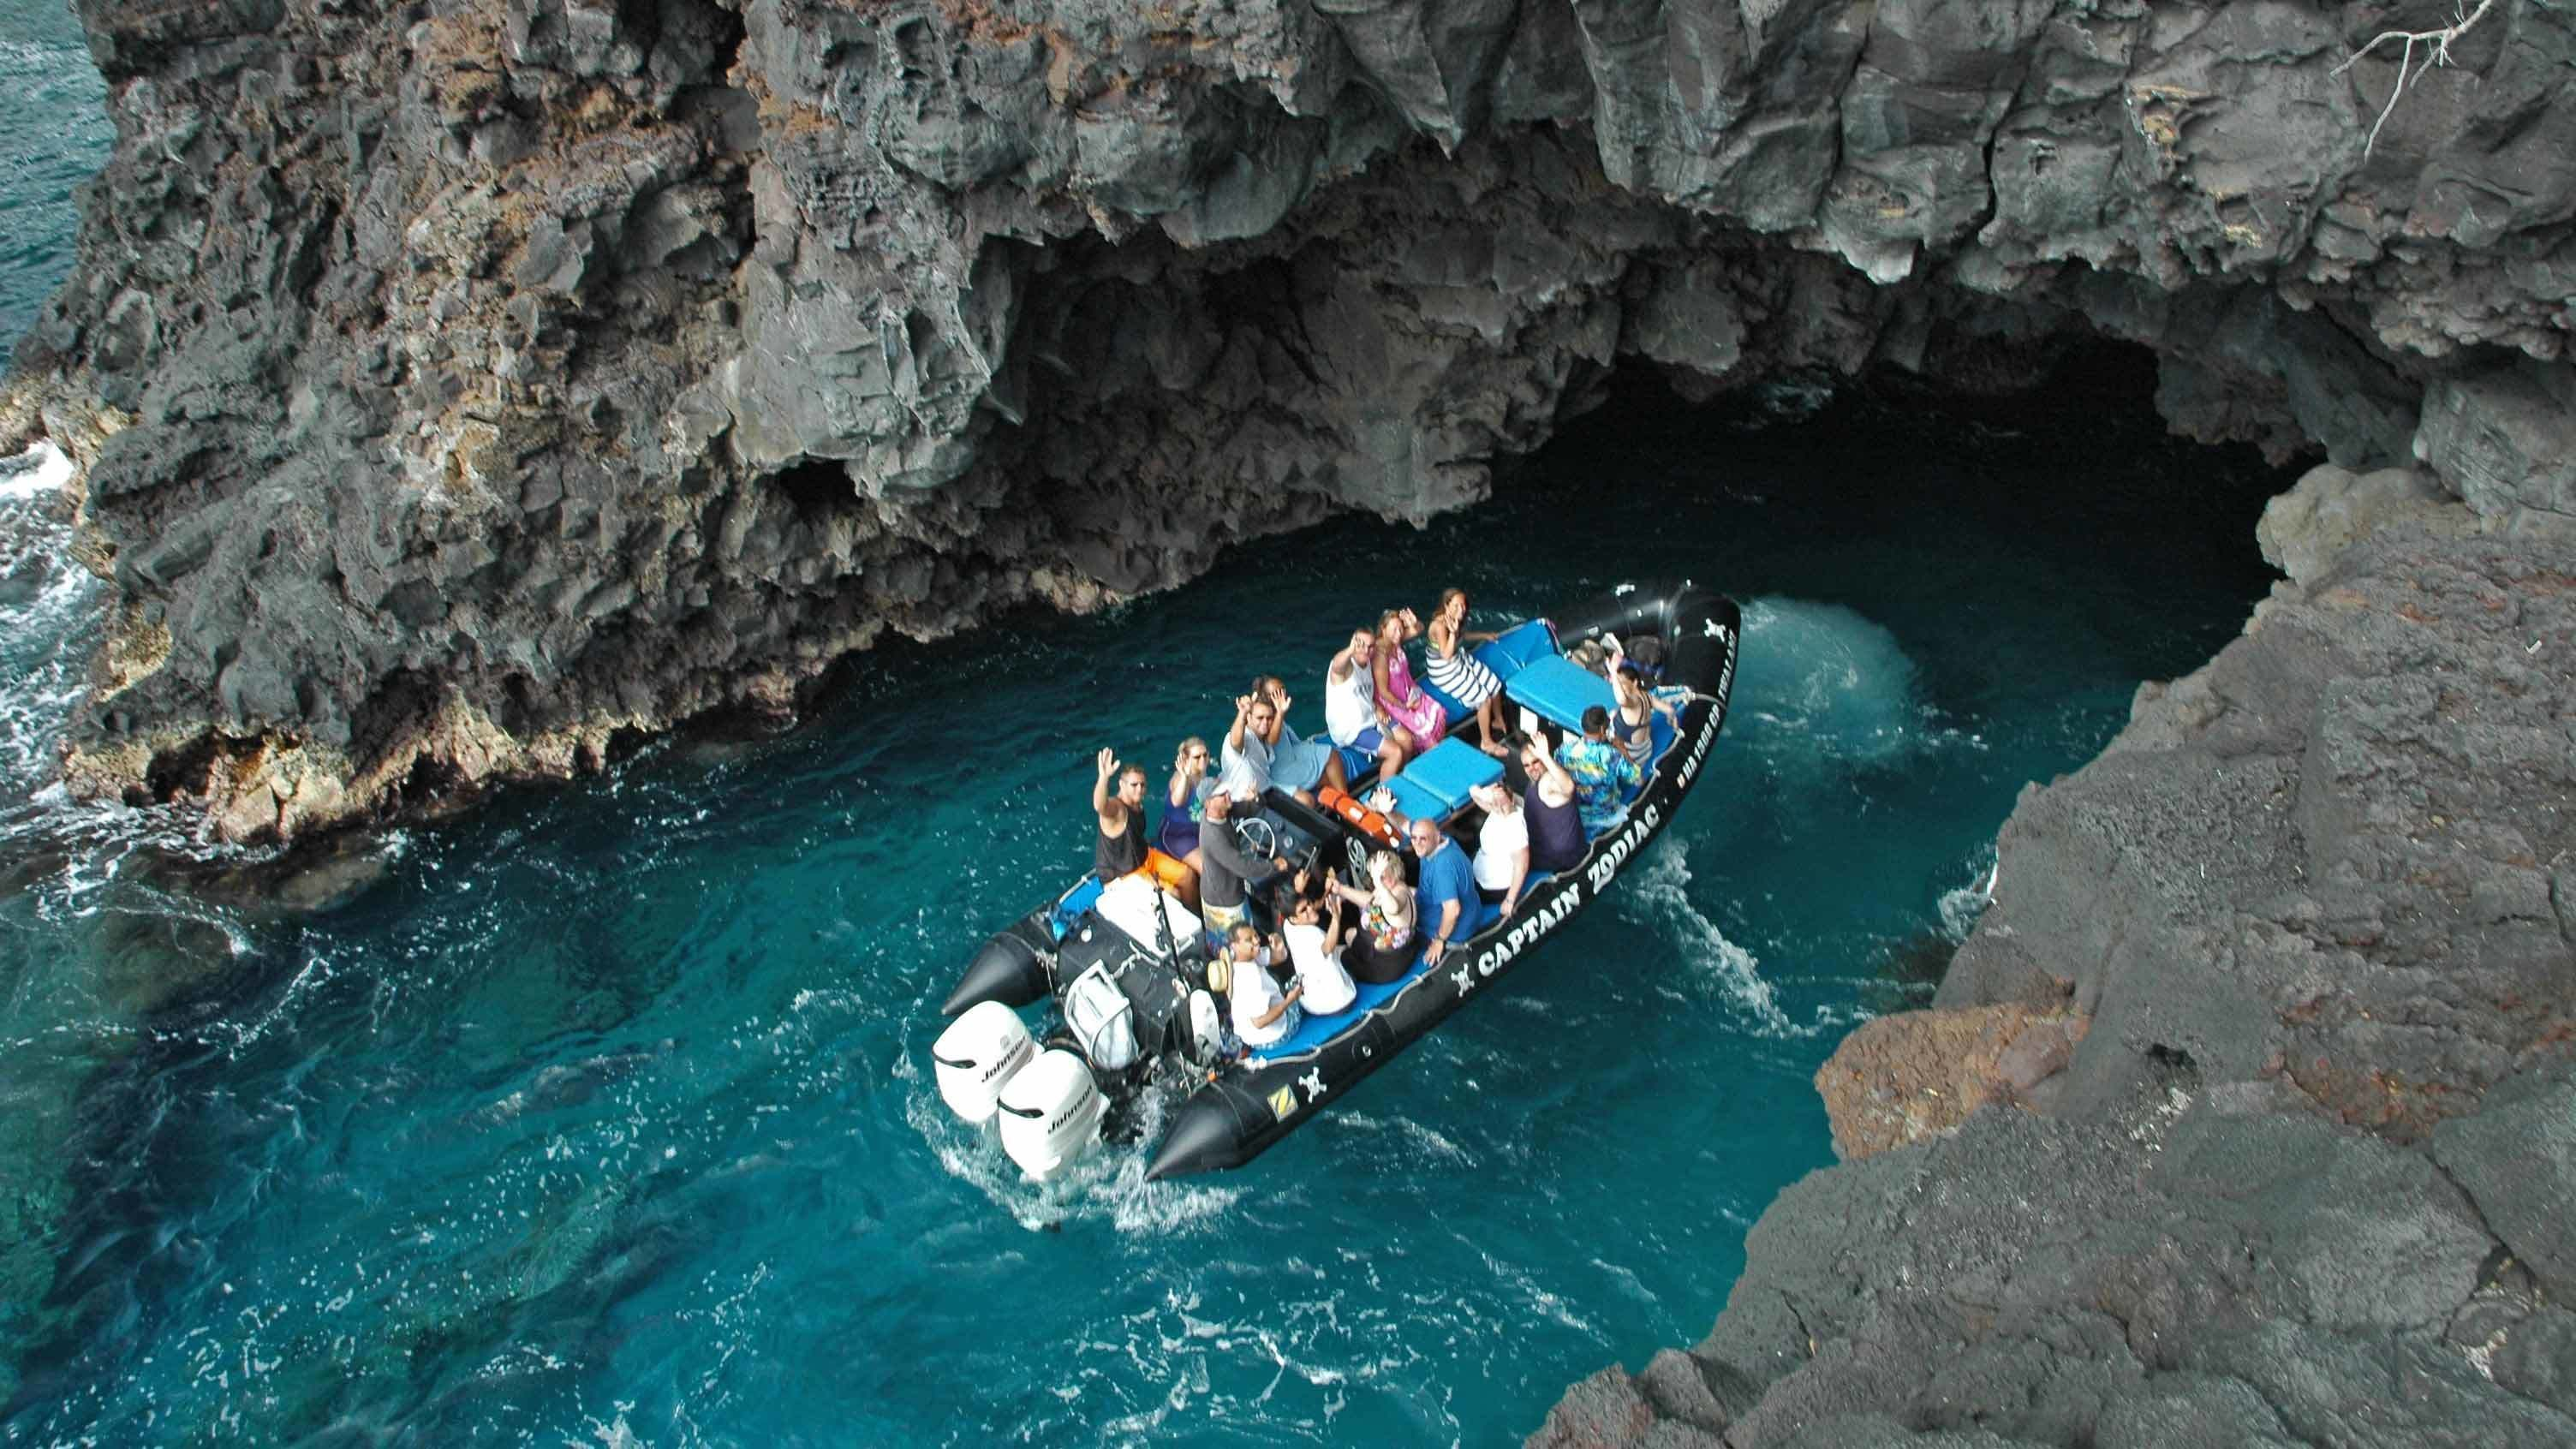 4-Hour Raft Expedition & Snorkeling in Kealakekua Bay